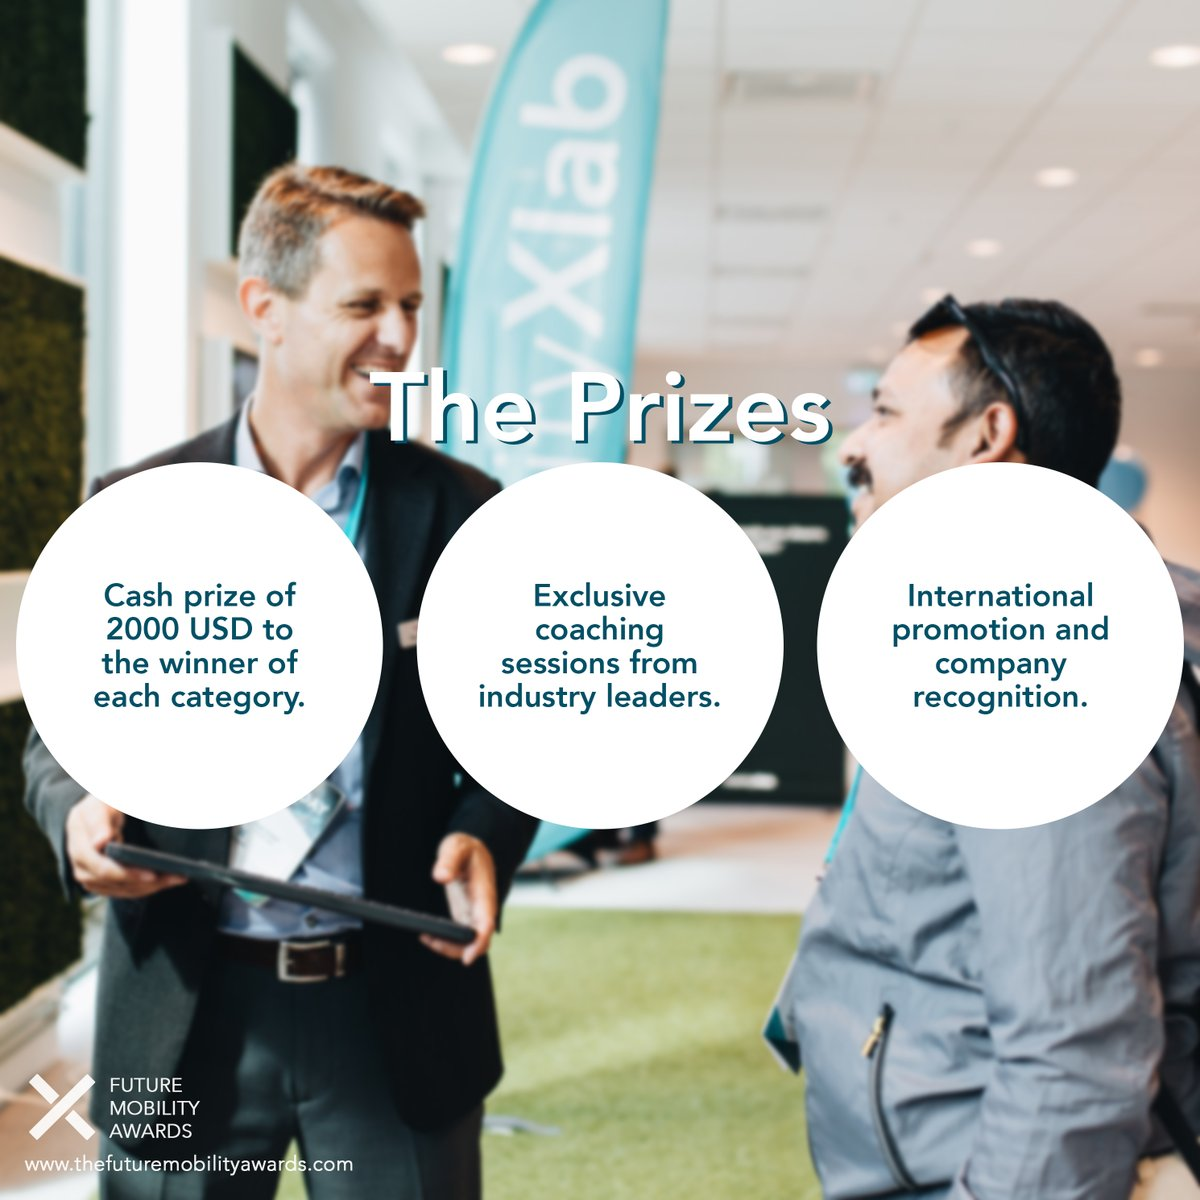 Have you seen the exciting prizes for the Future Mobility Awards? Read more and apply before August 21st at https://t.co/HPACGeaut1 @volvocars @VolvoGroup @Veoneer @cevt @ericsson @MathWorks https://t.co/kA2hzjq5Y9